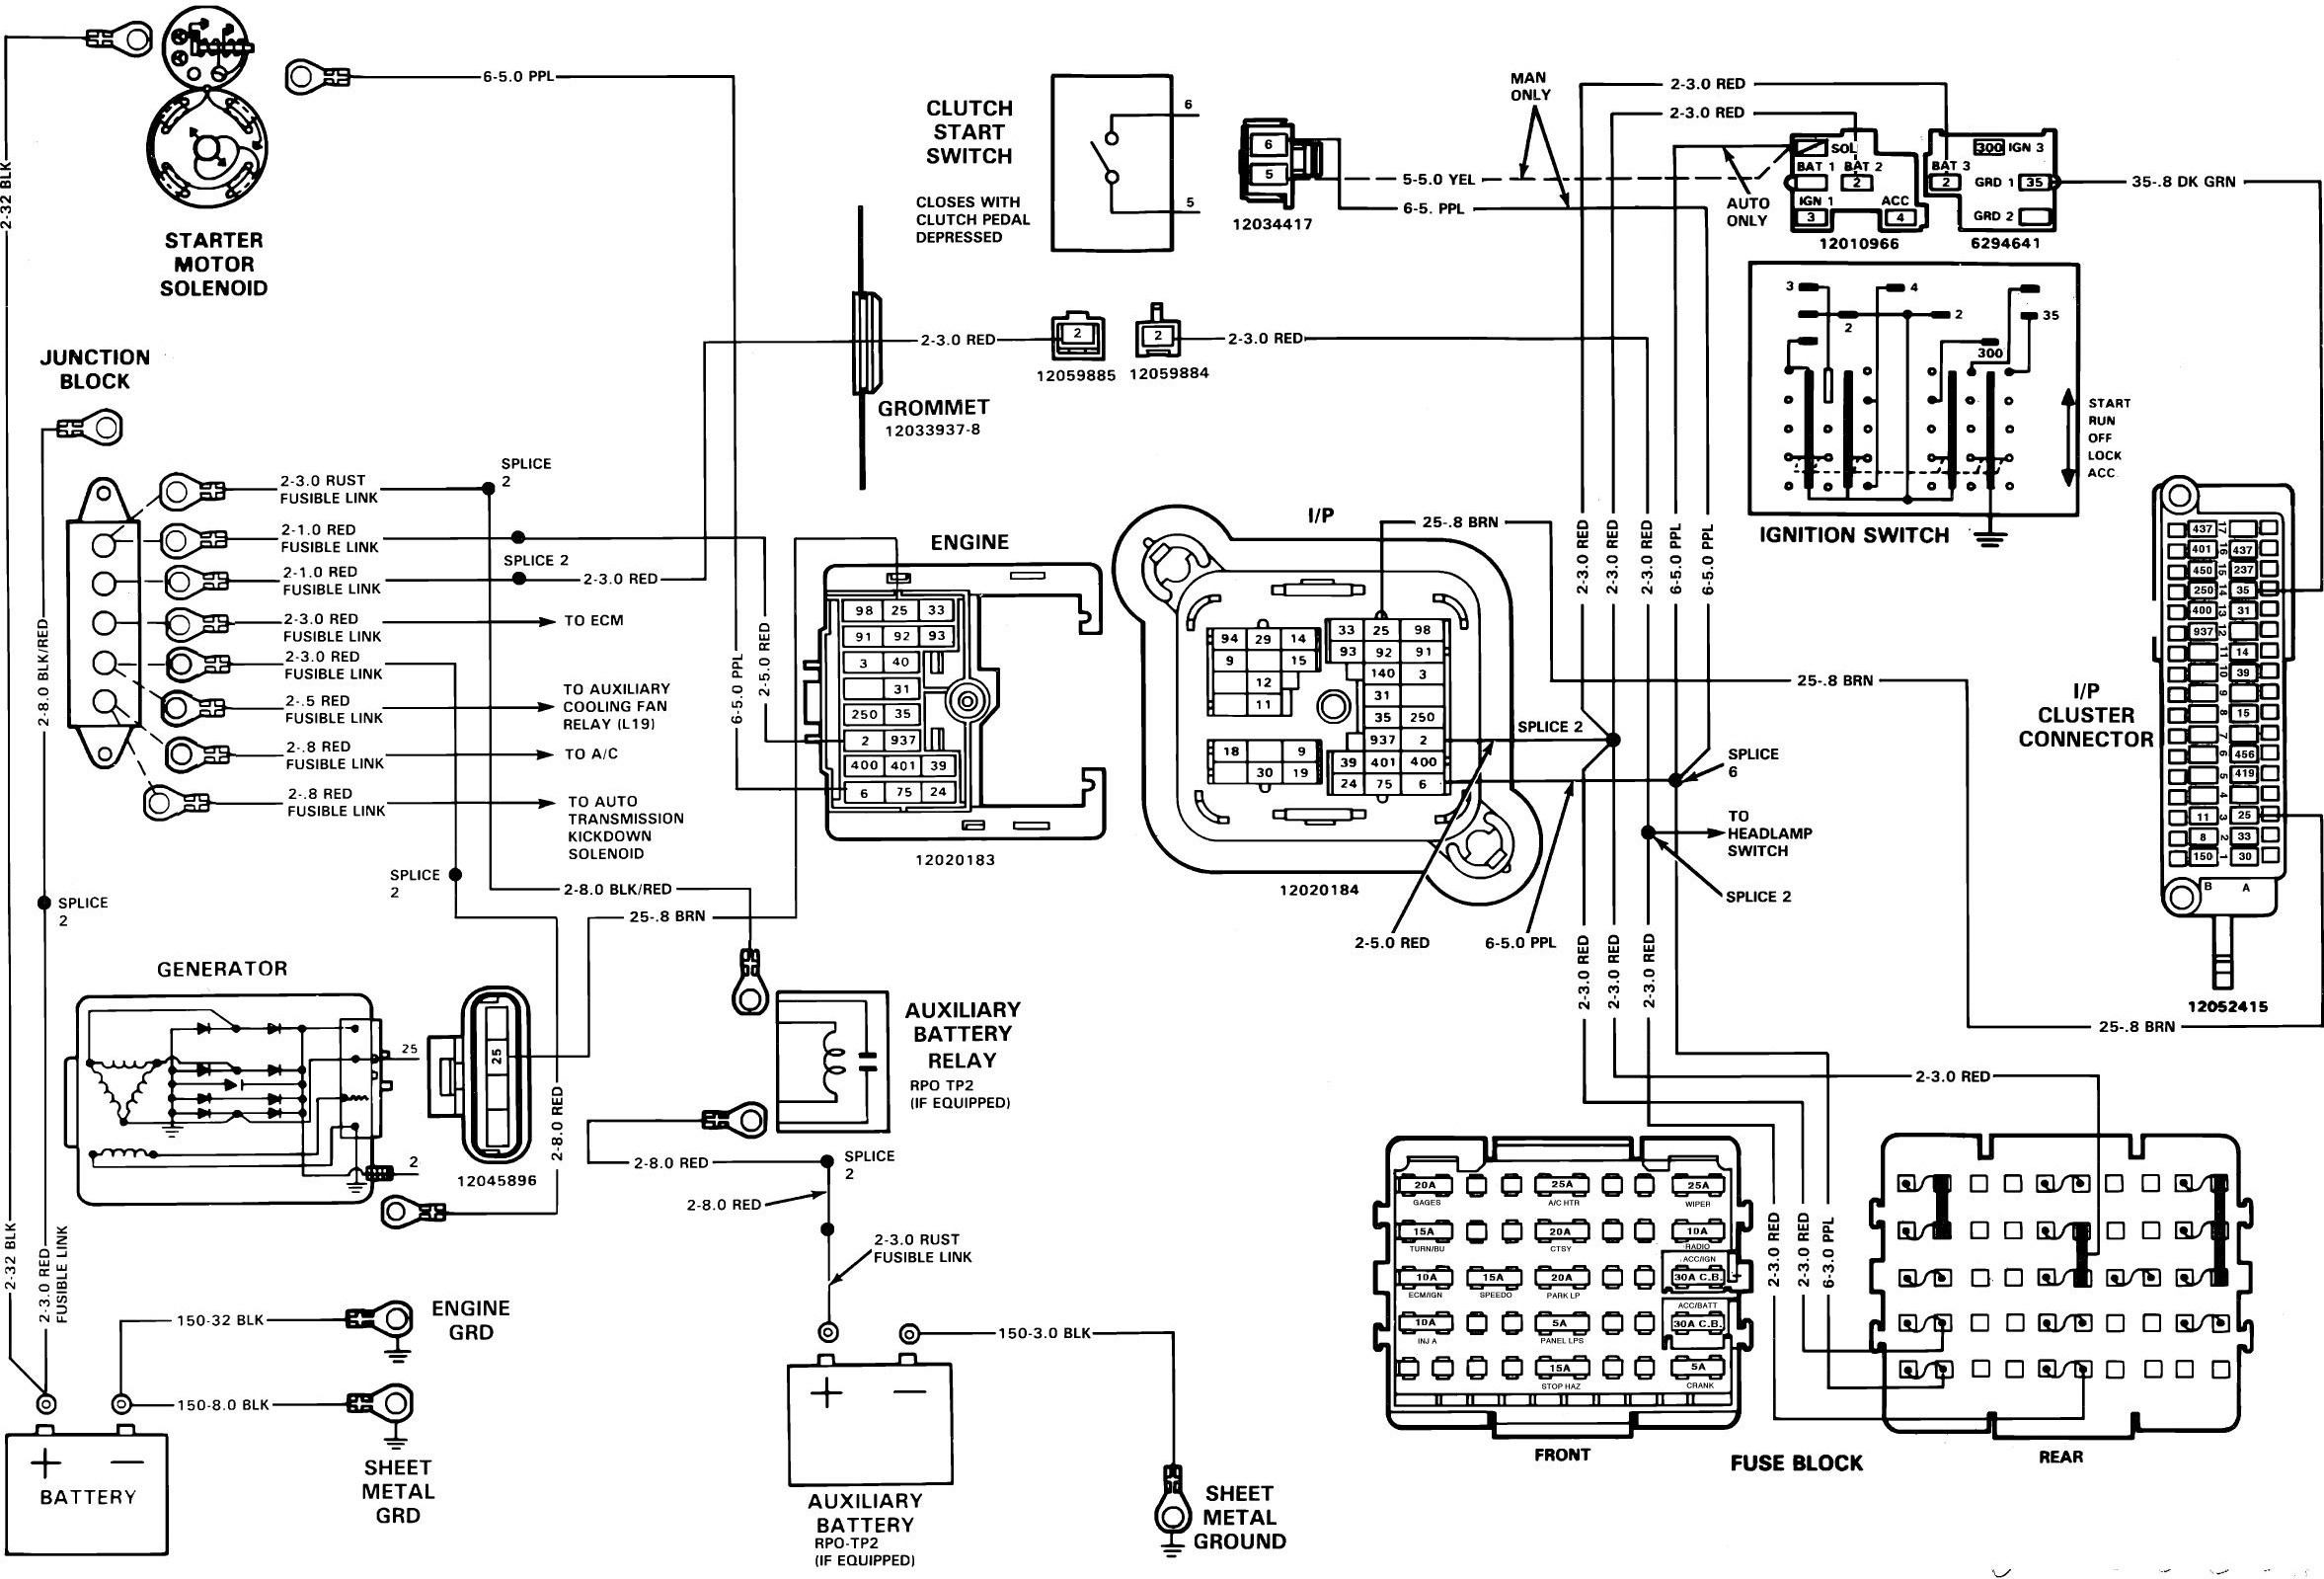 44D0EB Jeep Turn Signal Wiring Diagram 1981 | ePANEL Digital ... on ford 8n wiring diagram, 1960 willys l6-226 12 volt wiring diagram, 1979 jeep wiring diagram, jeep cj5 wiring-diagram, 1986 jeep wiring diagram, simple chopper wiring diagram, 86 cj7 distributor wiring diagram, 2014 jeep wrangler wiring diagram, 1984 jeep cj wiring diagram, 2009 dodge 4500 pto wiring diagram,